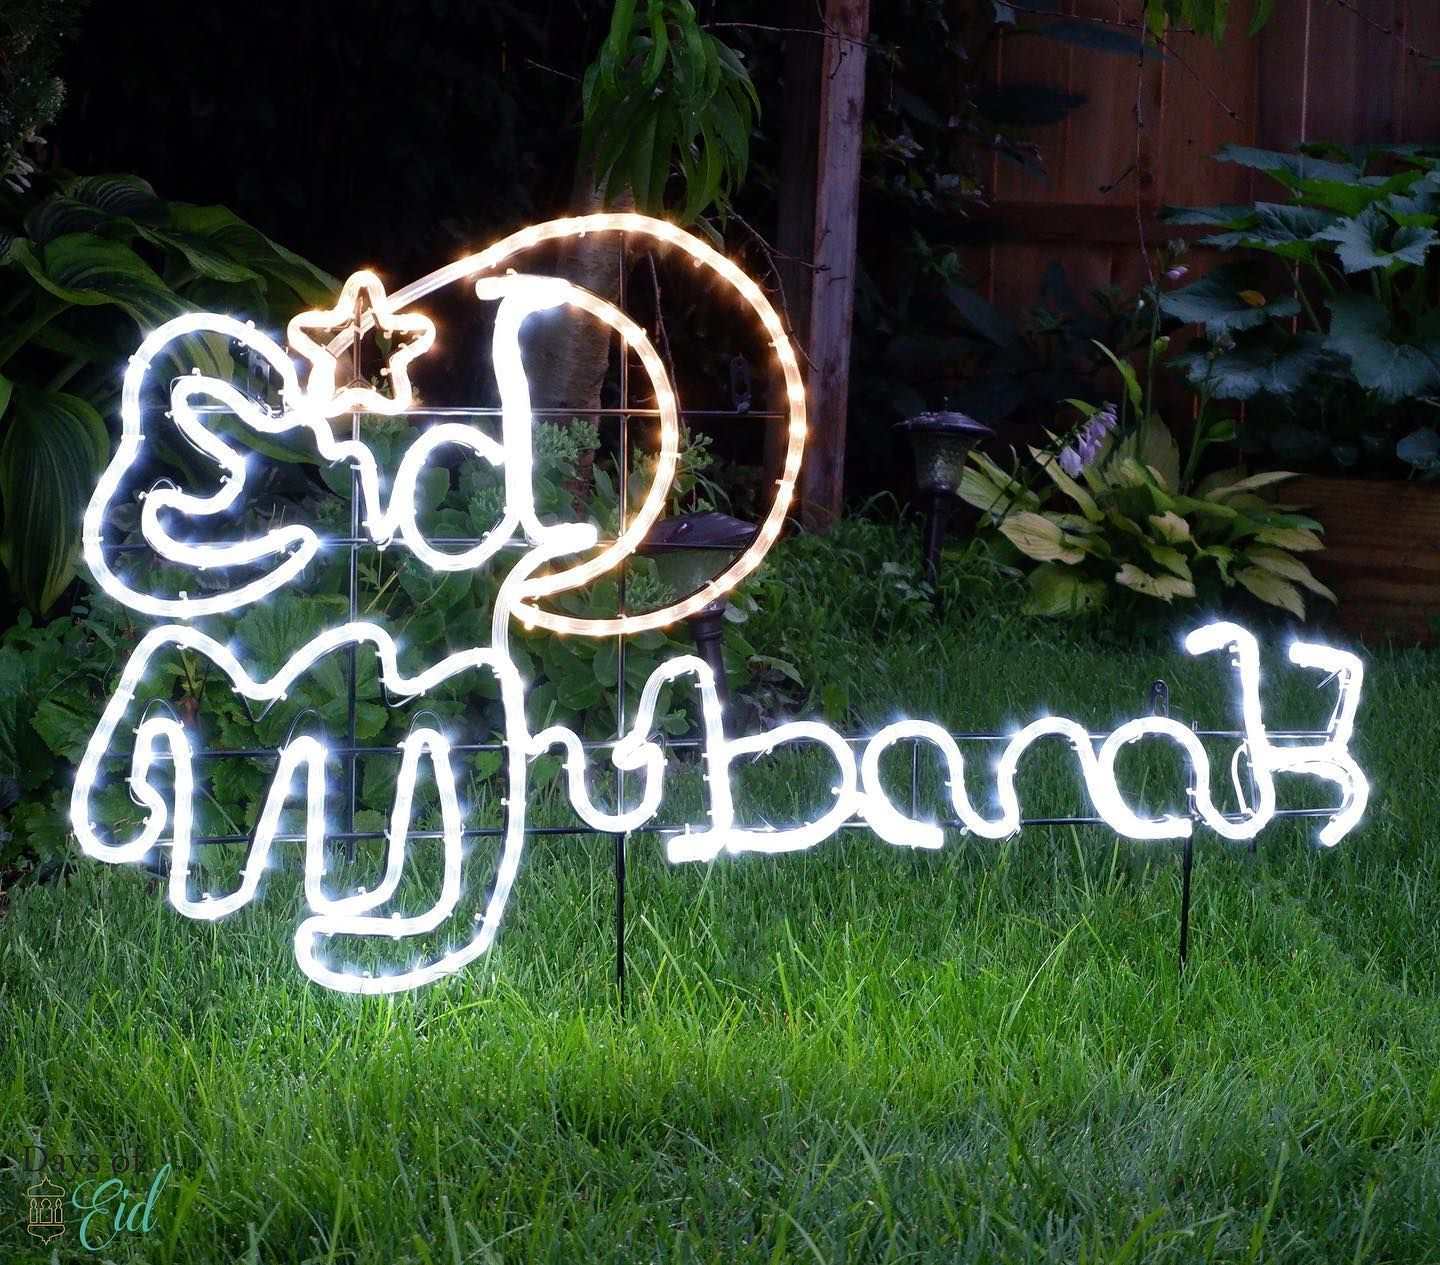 It S The First Few Days Of August And We Re Loving How Our Eid Mubarak Led Lights Up The Backyard Tap To Shop This Look A Eid Mubarak Neon Signs Led Lights